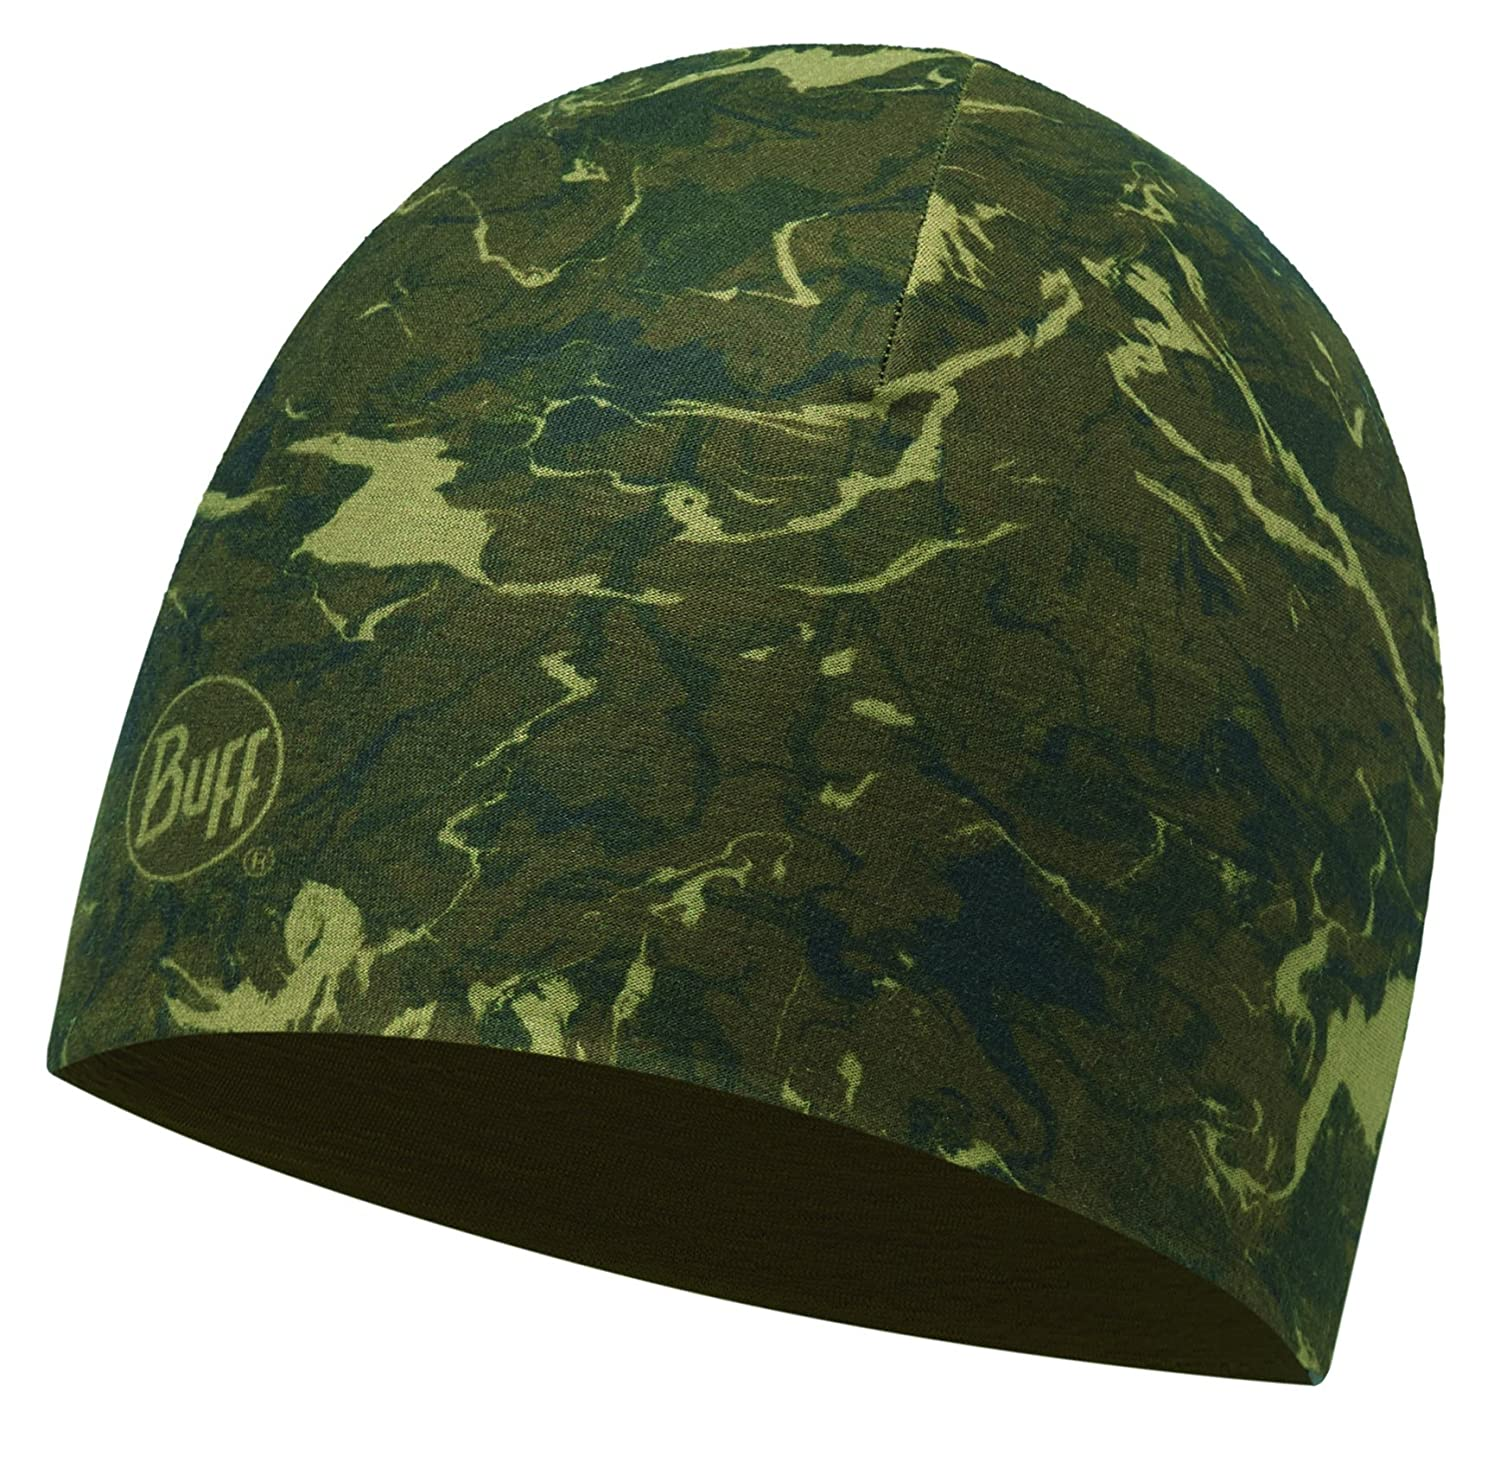 Buff is 2 Layers Hat Mütze Disguise Military One Size Original Buff S.A.